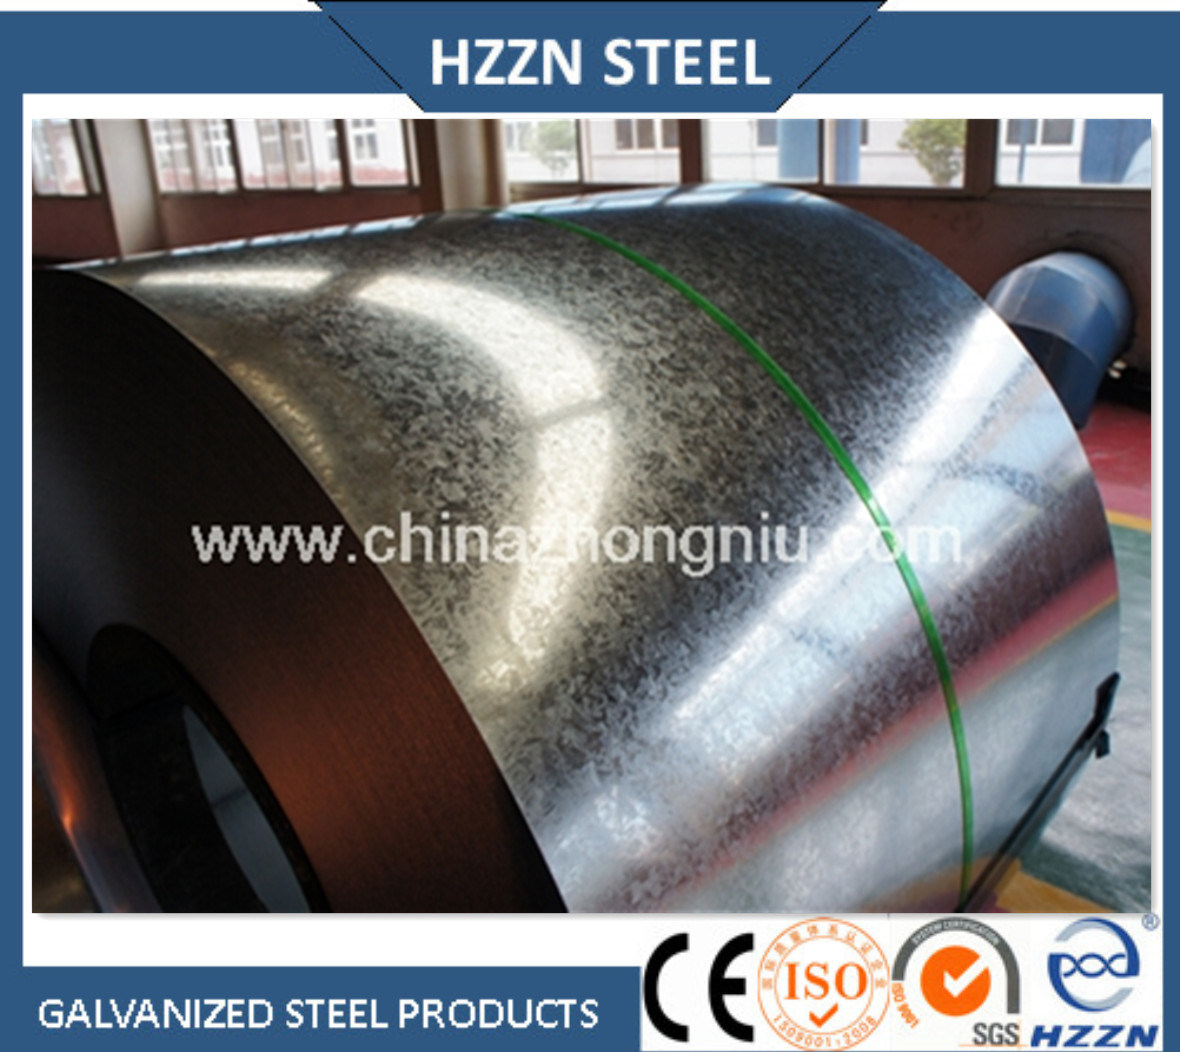 Baosteel (Huangshi) Hot Dipped Galvanized Steel Coil with SGS